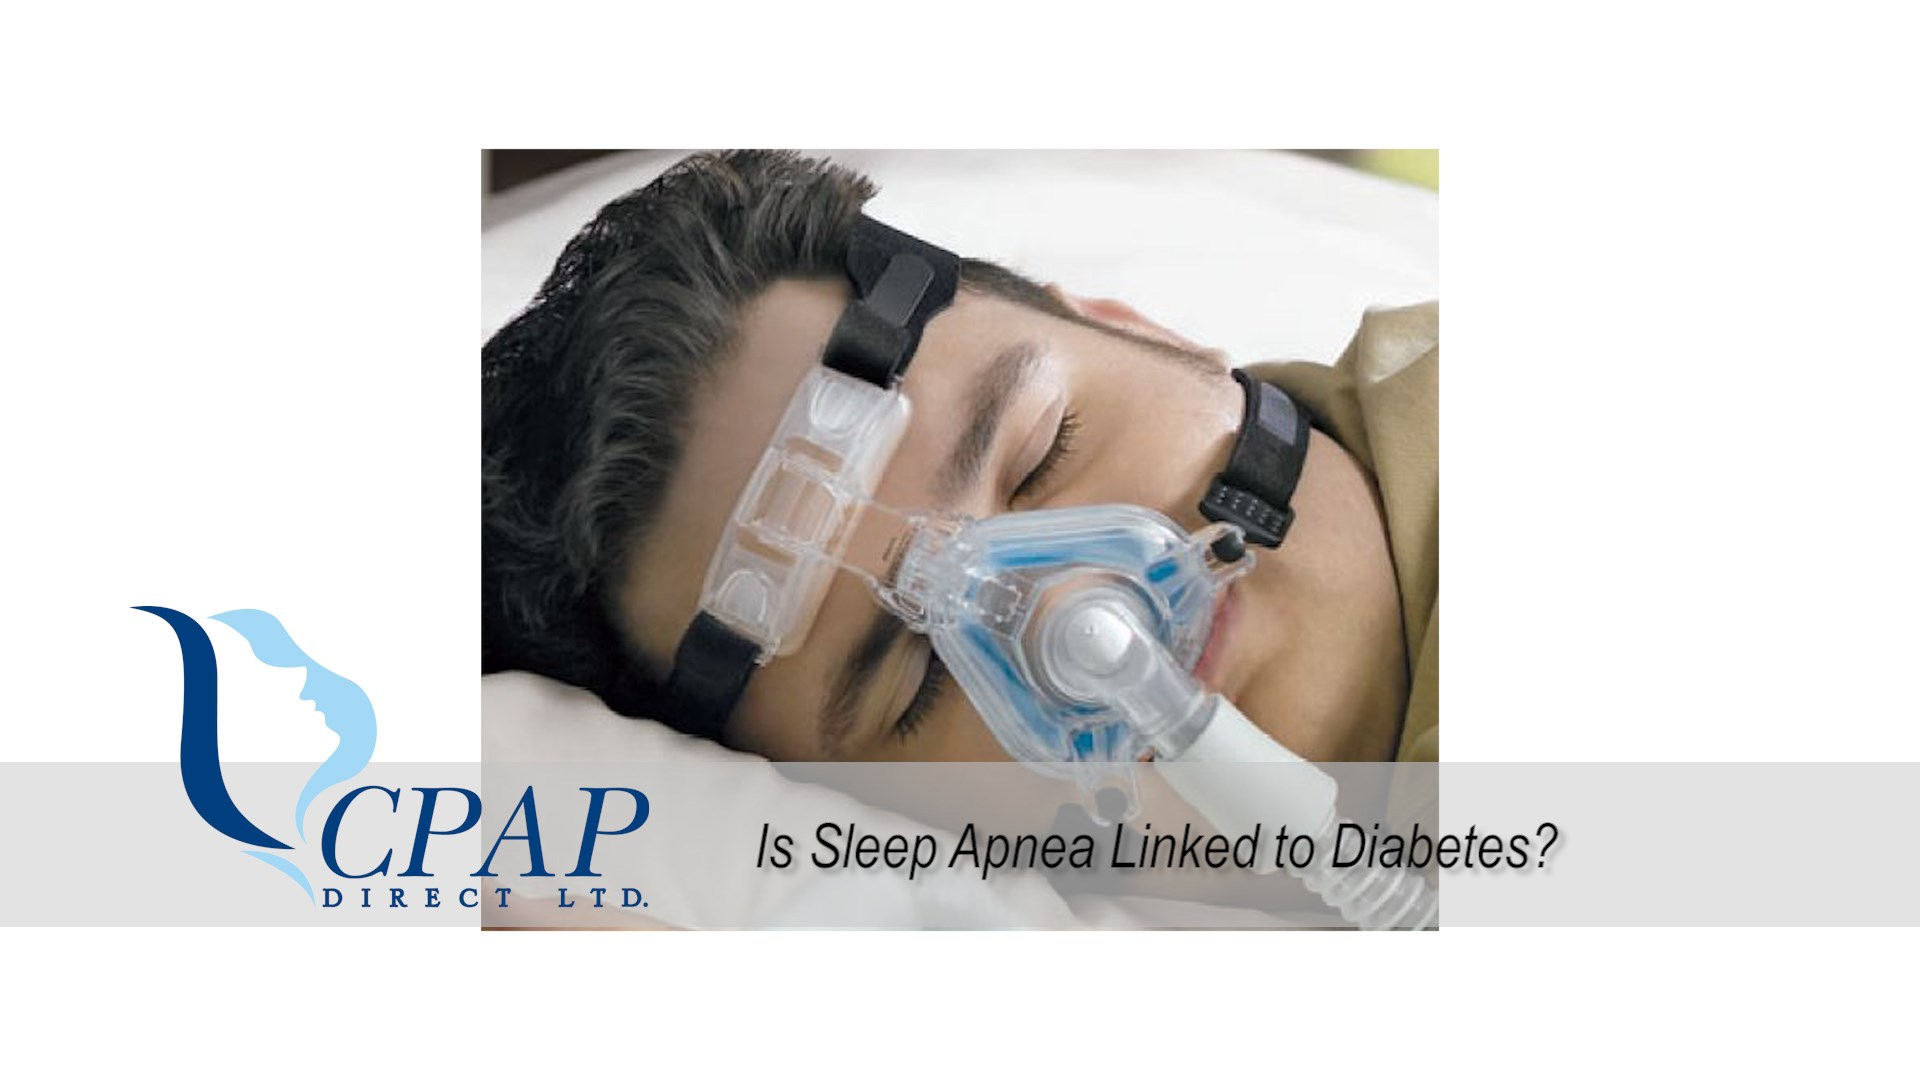 Is Sleep Apnea Linked to Diabetes